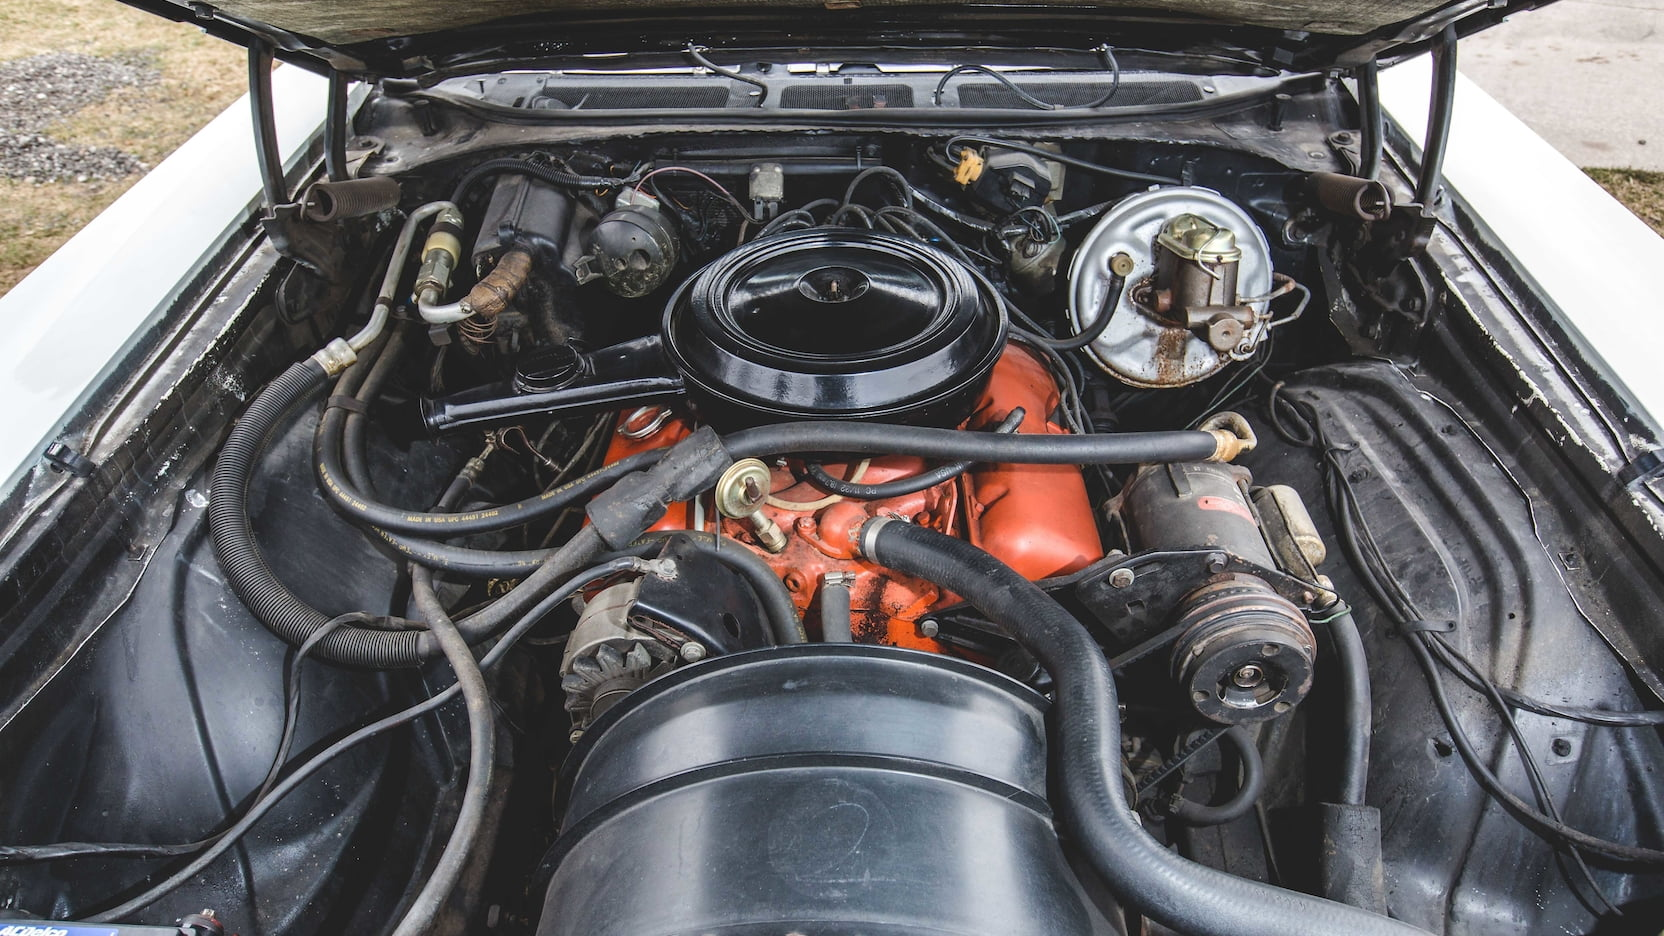 1970 Chevrolet Monte Carlo SS engine